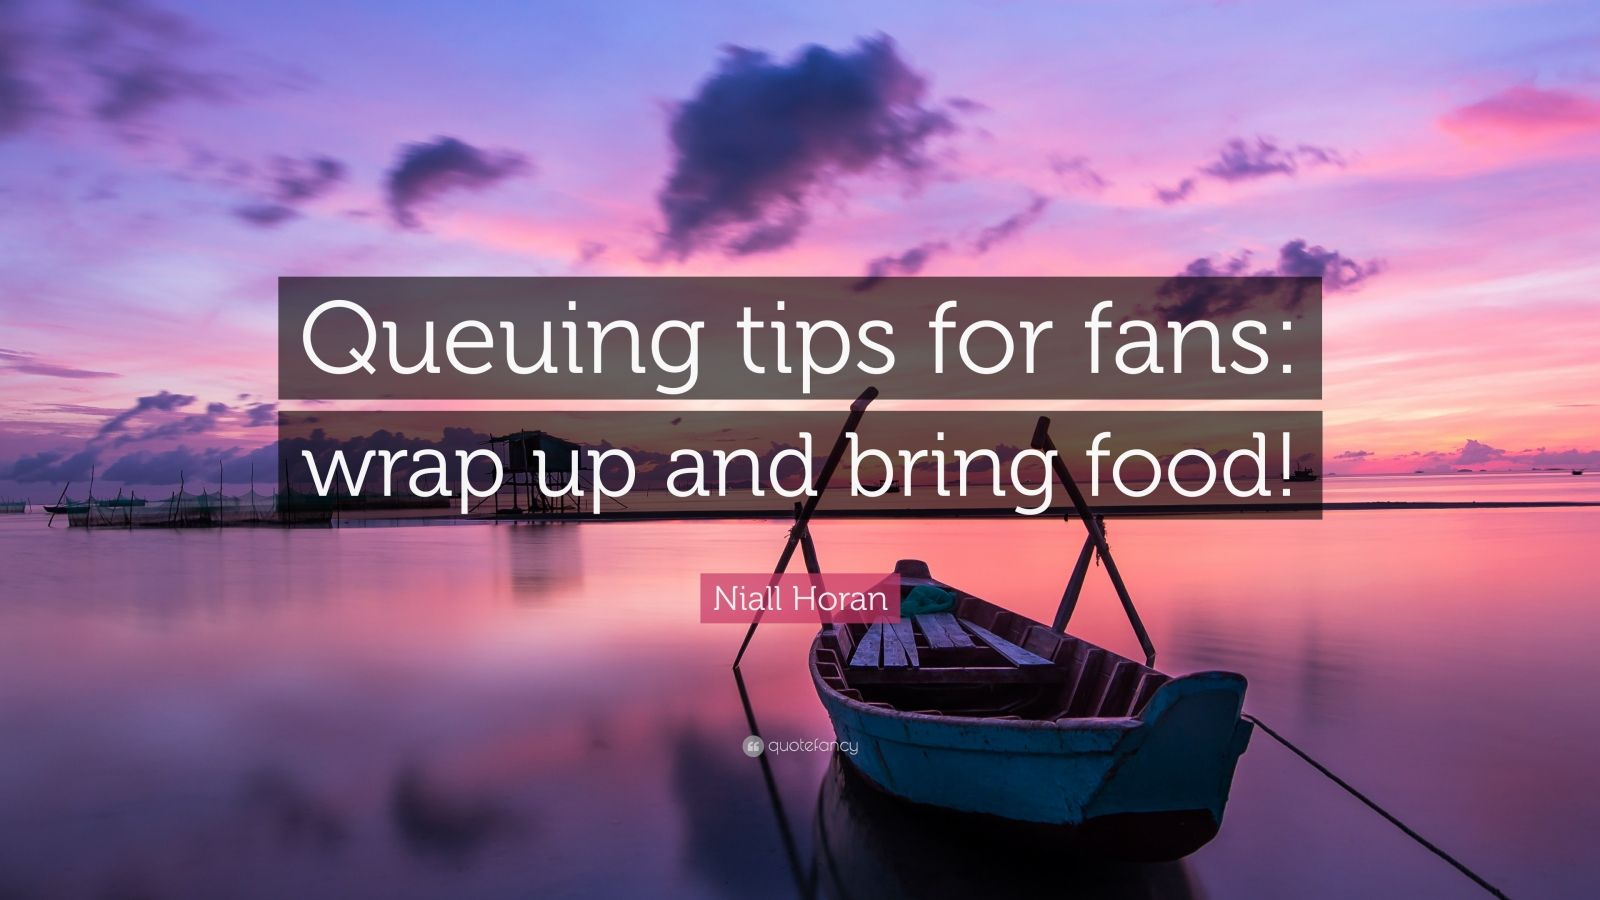 """Niall Horan Quote: """"Queuing tips for fans: wrap up and bring food!"""""""